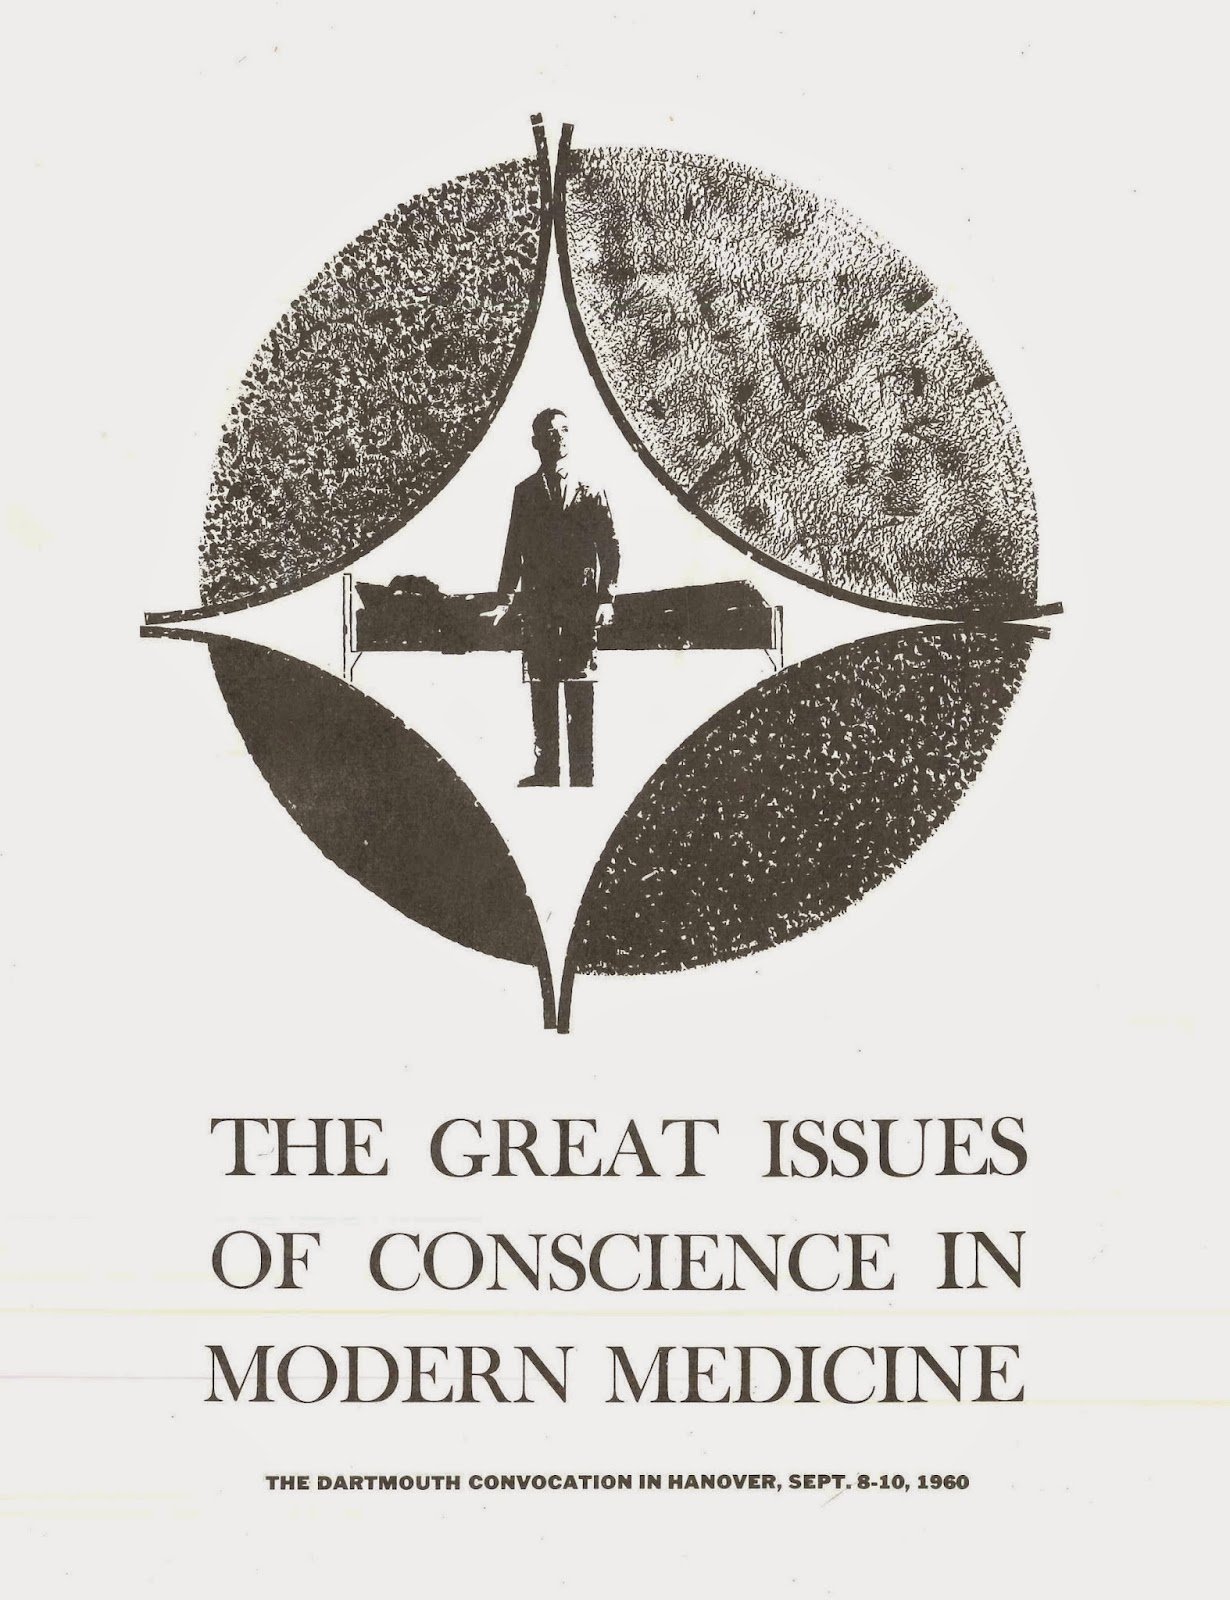 Rauner Special Collections Library The Medical Humanities